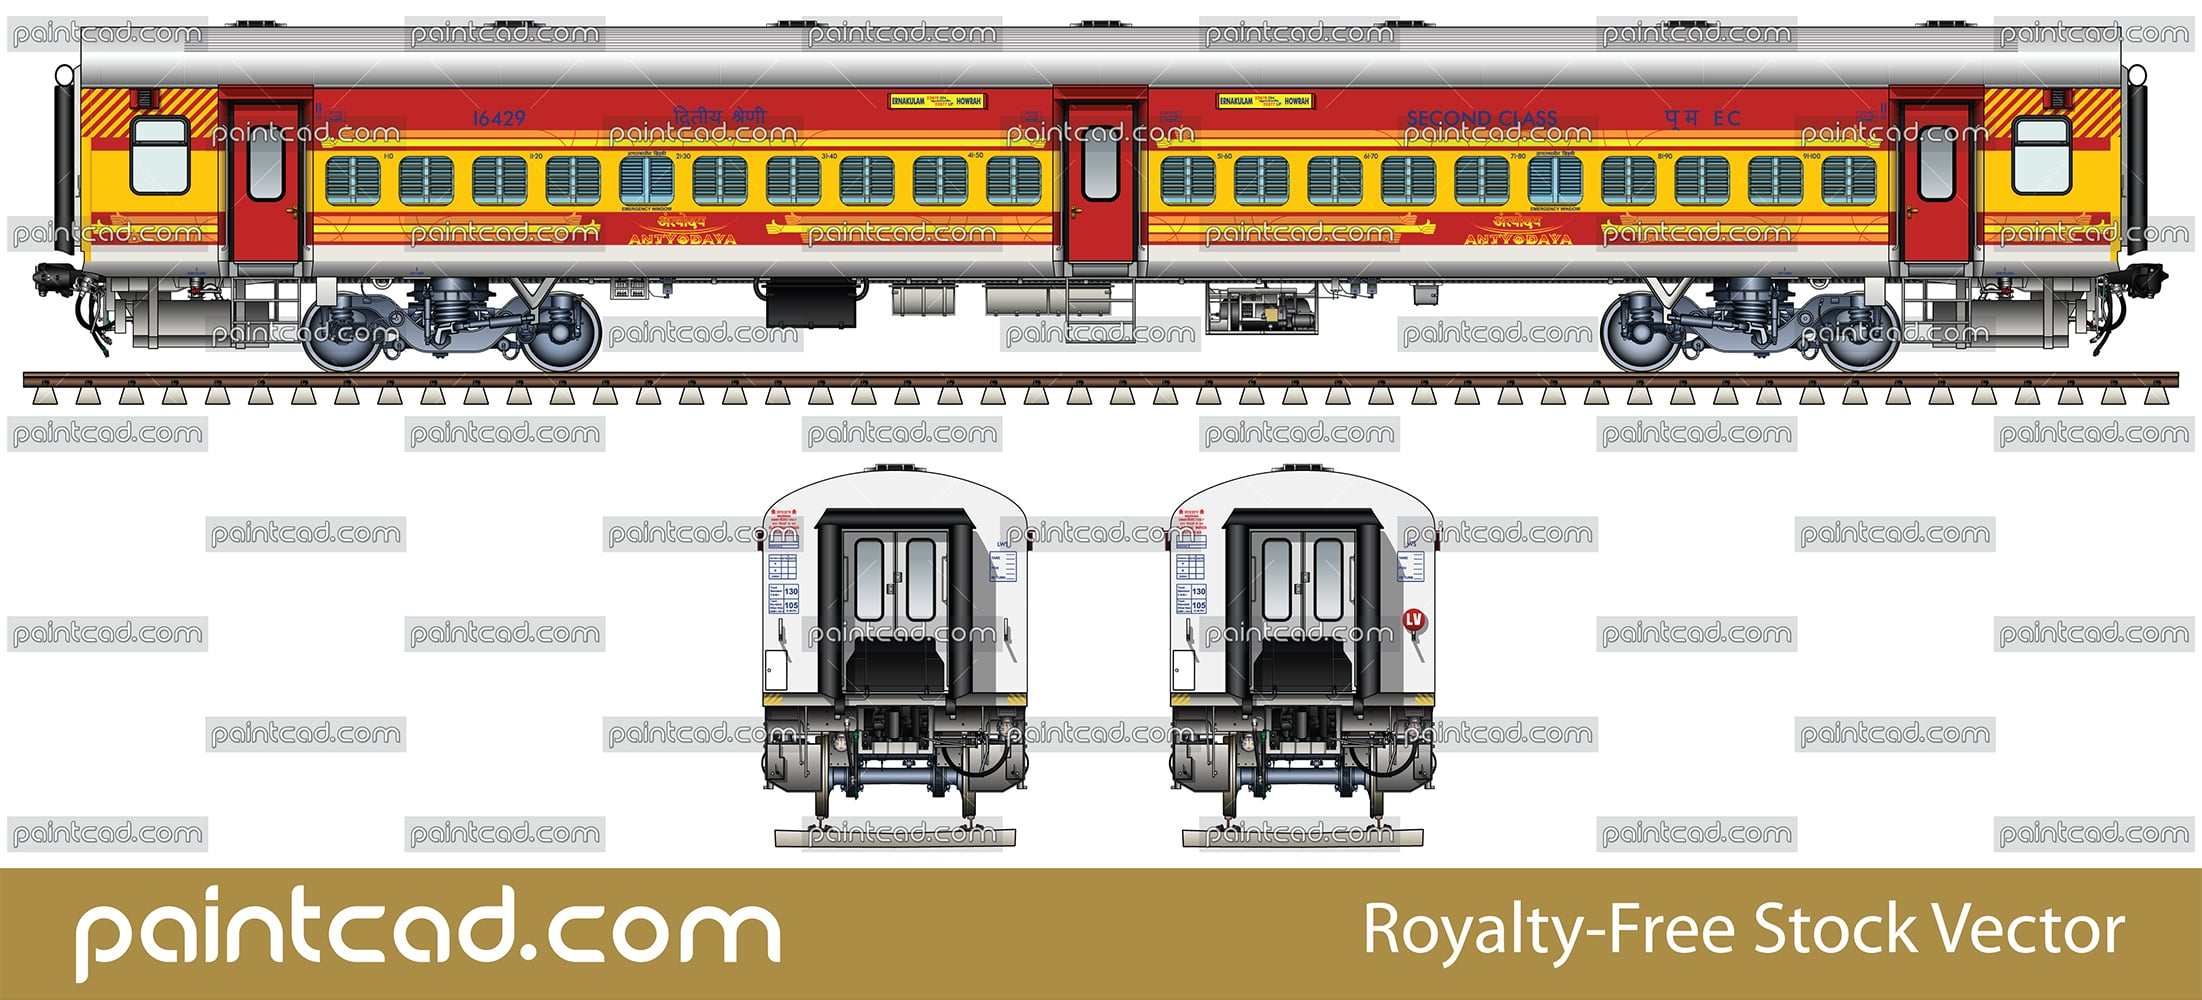 Indian passenger coach LHB type in livery of Antyodaya train - vector illustration